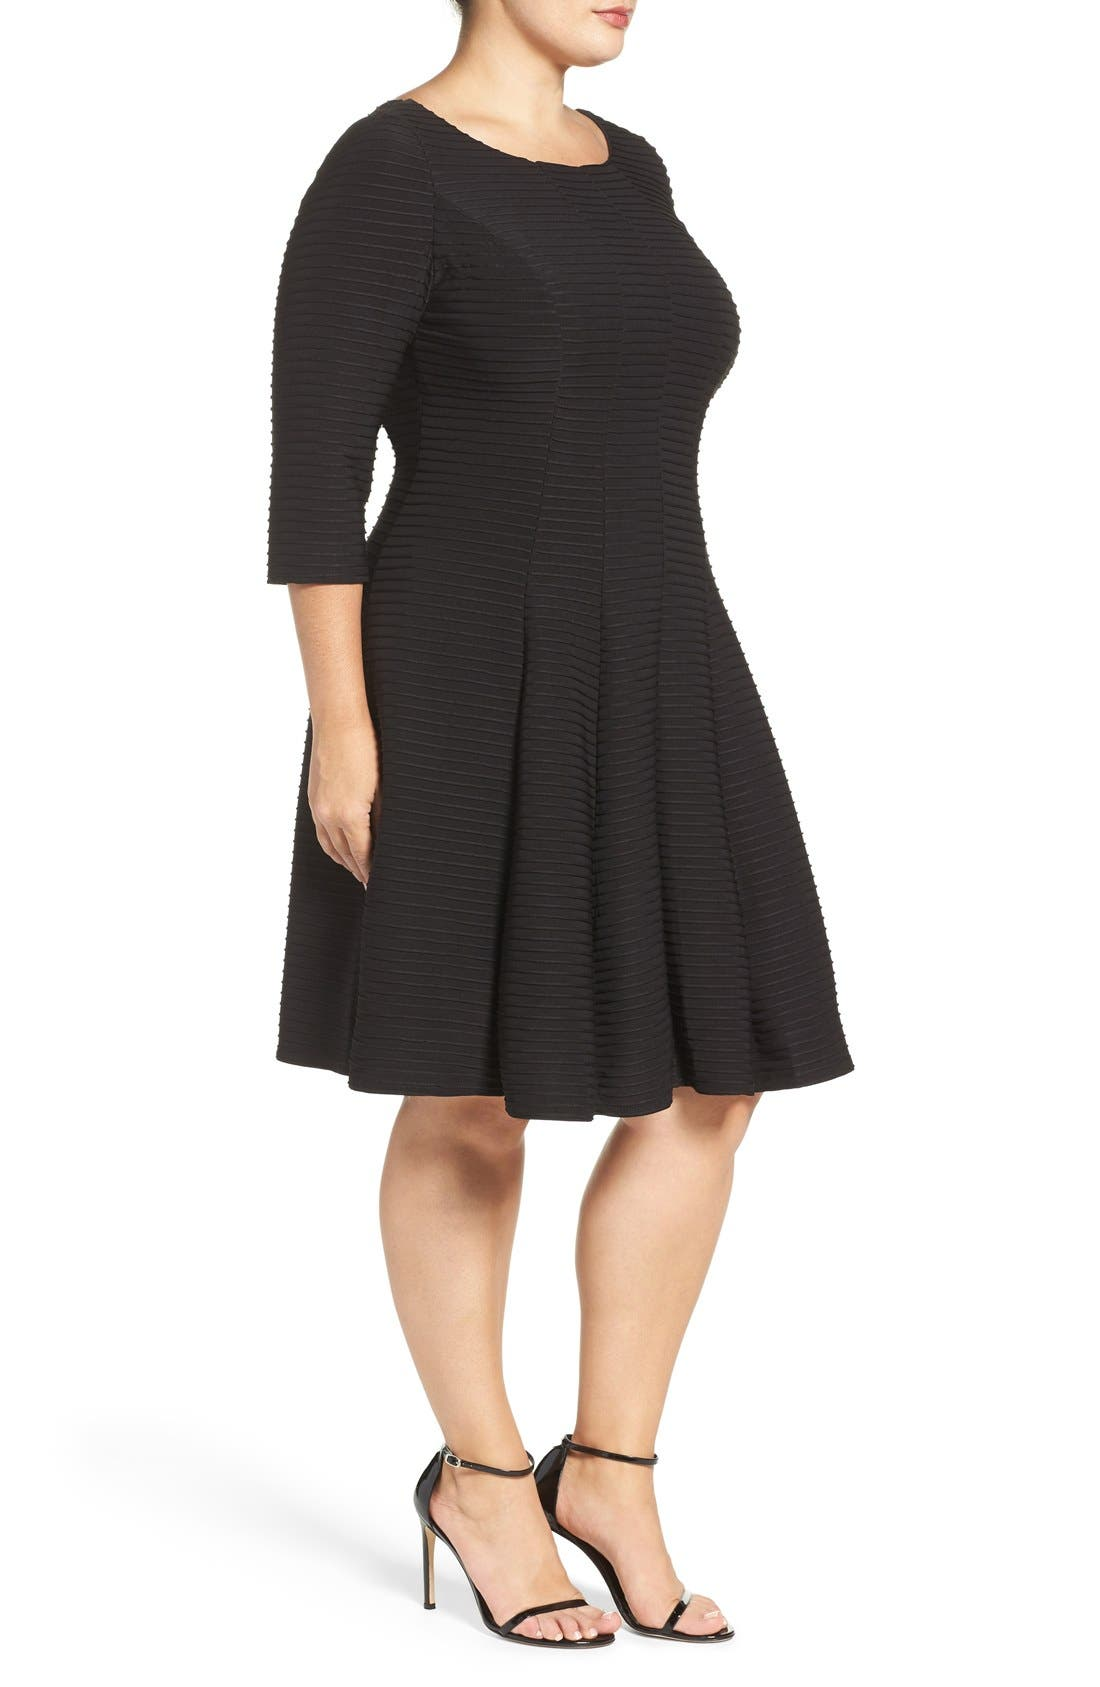 Alternate Image 3  - Gabby Skye Pintuck Knit Fit & Flare Dress (Plus Size)